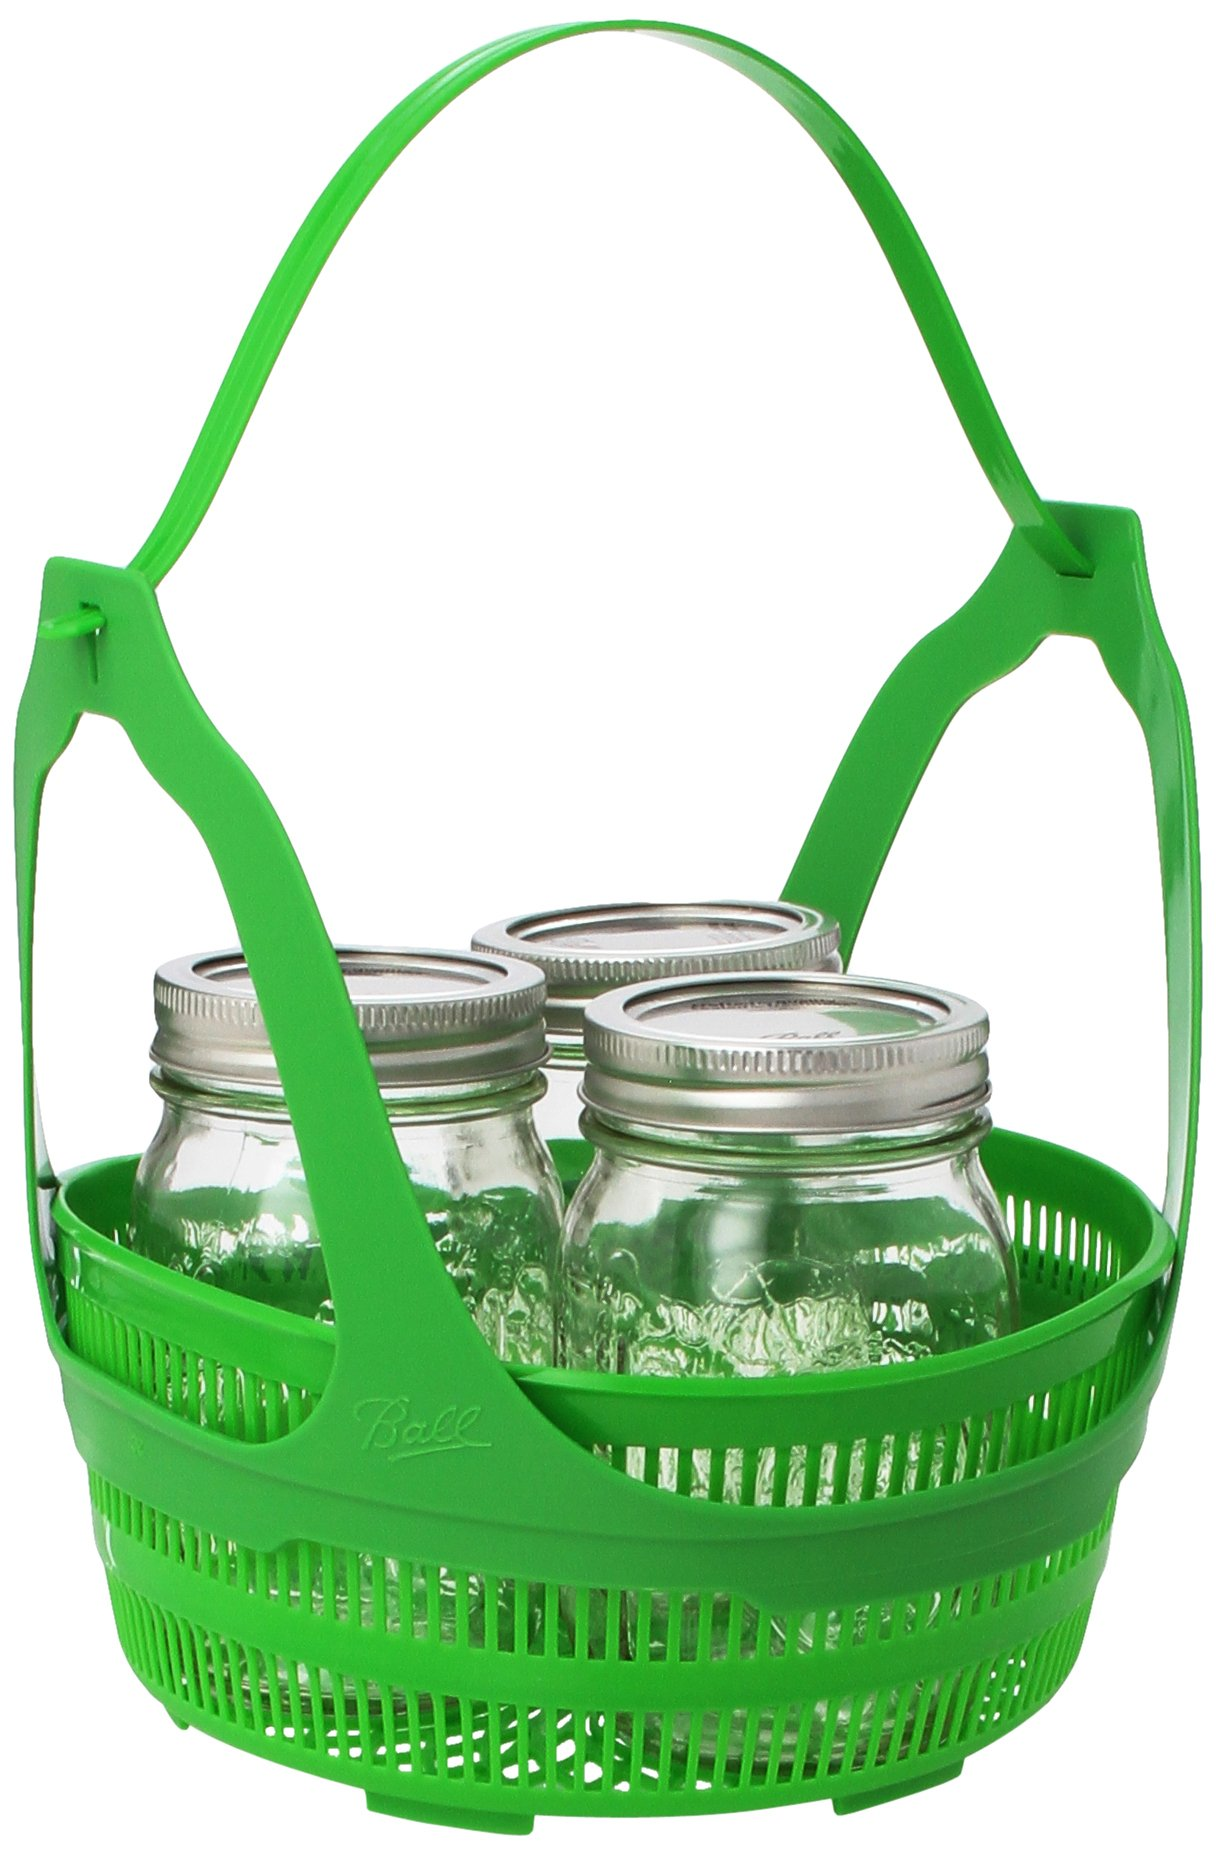 Ball Home Canning Discovery Kit (by Jarden Home Brands) by Ball